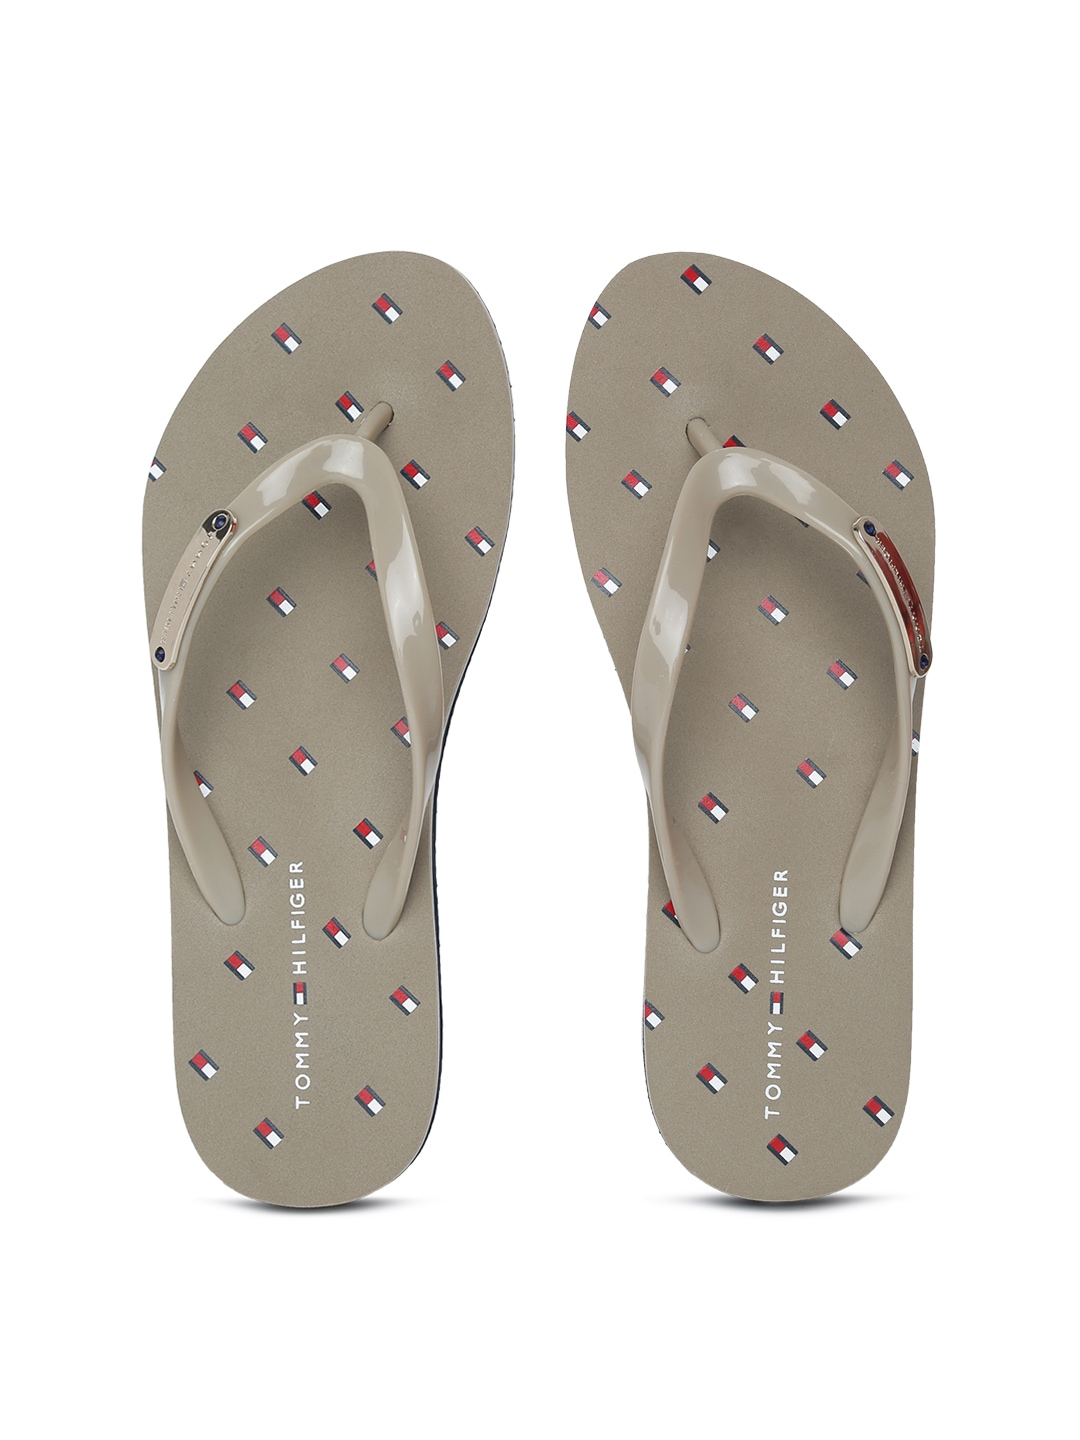 c12cd5f0715e Tommy Hilfiger Beige Flip Flops for women - Get stylish shoes for ...